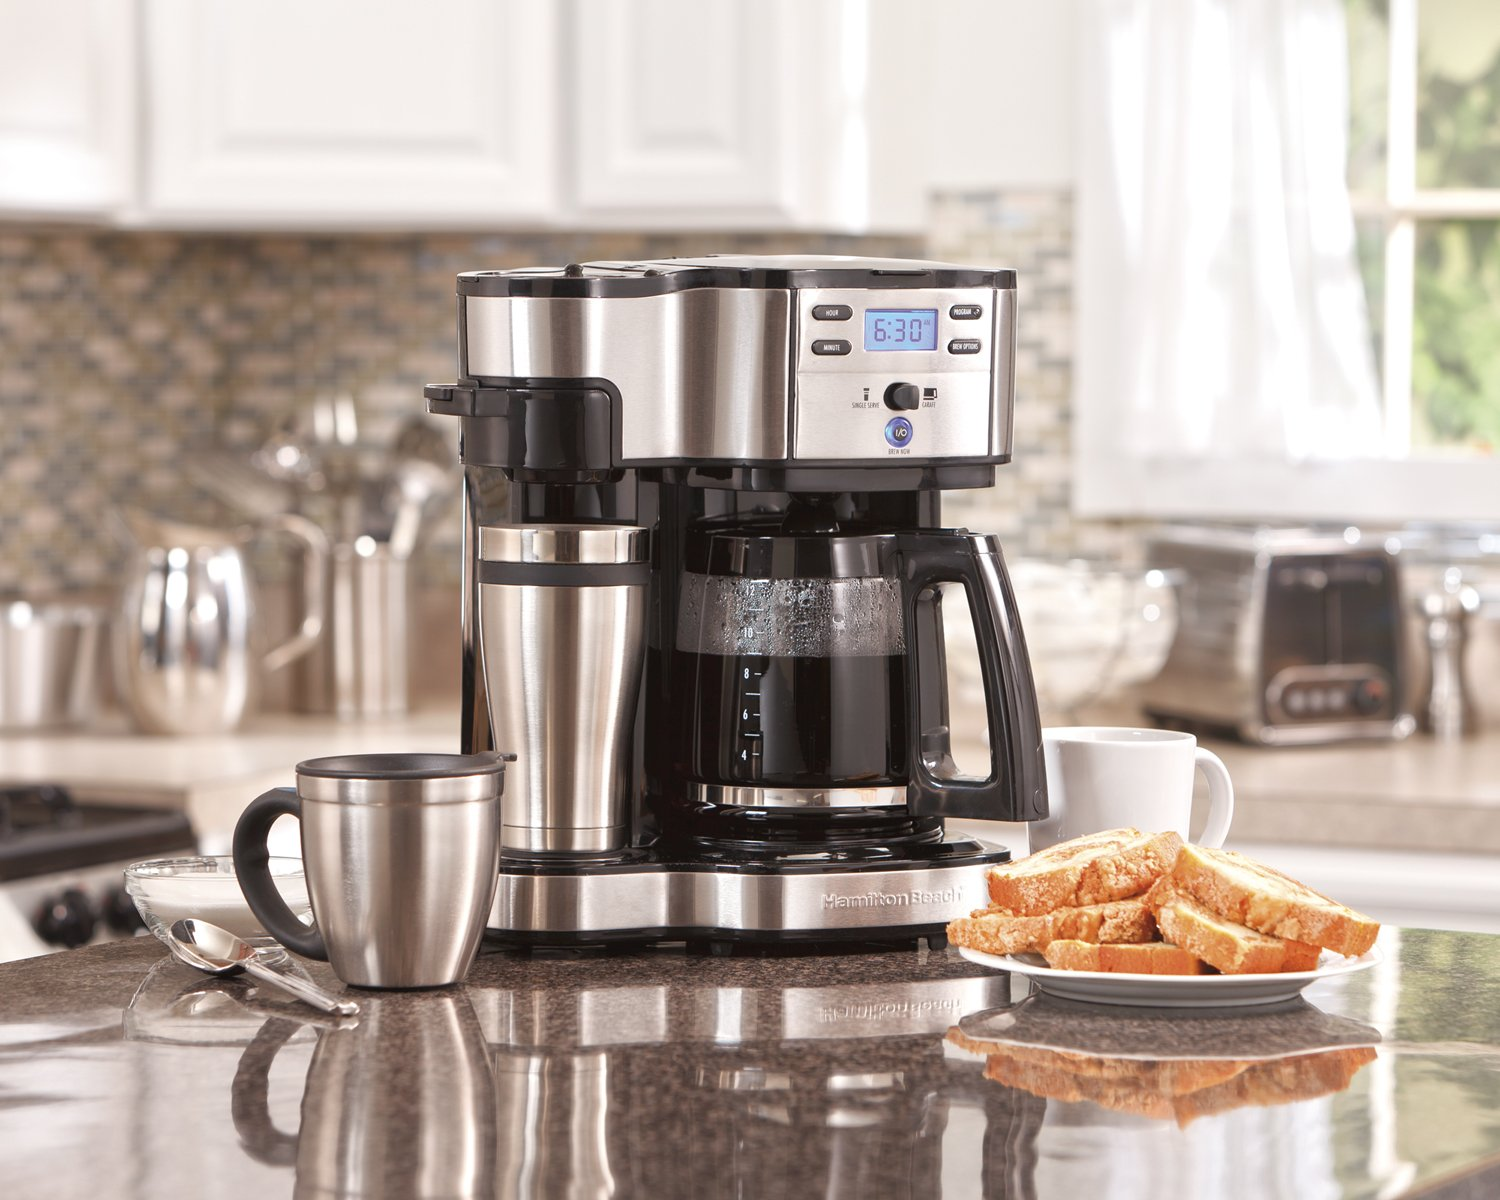 Hamilton Beach (49980A) Single Serve Coffee Maker and Coffee Pot Maker, Programmable, Black/Stainless Steel by Hamilton Beach (Image #4)